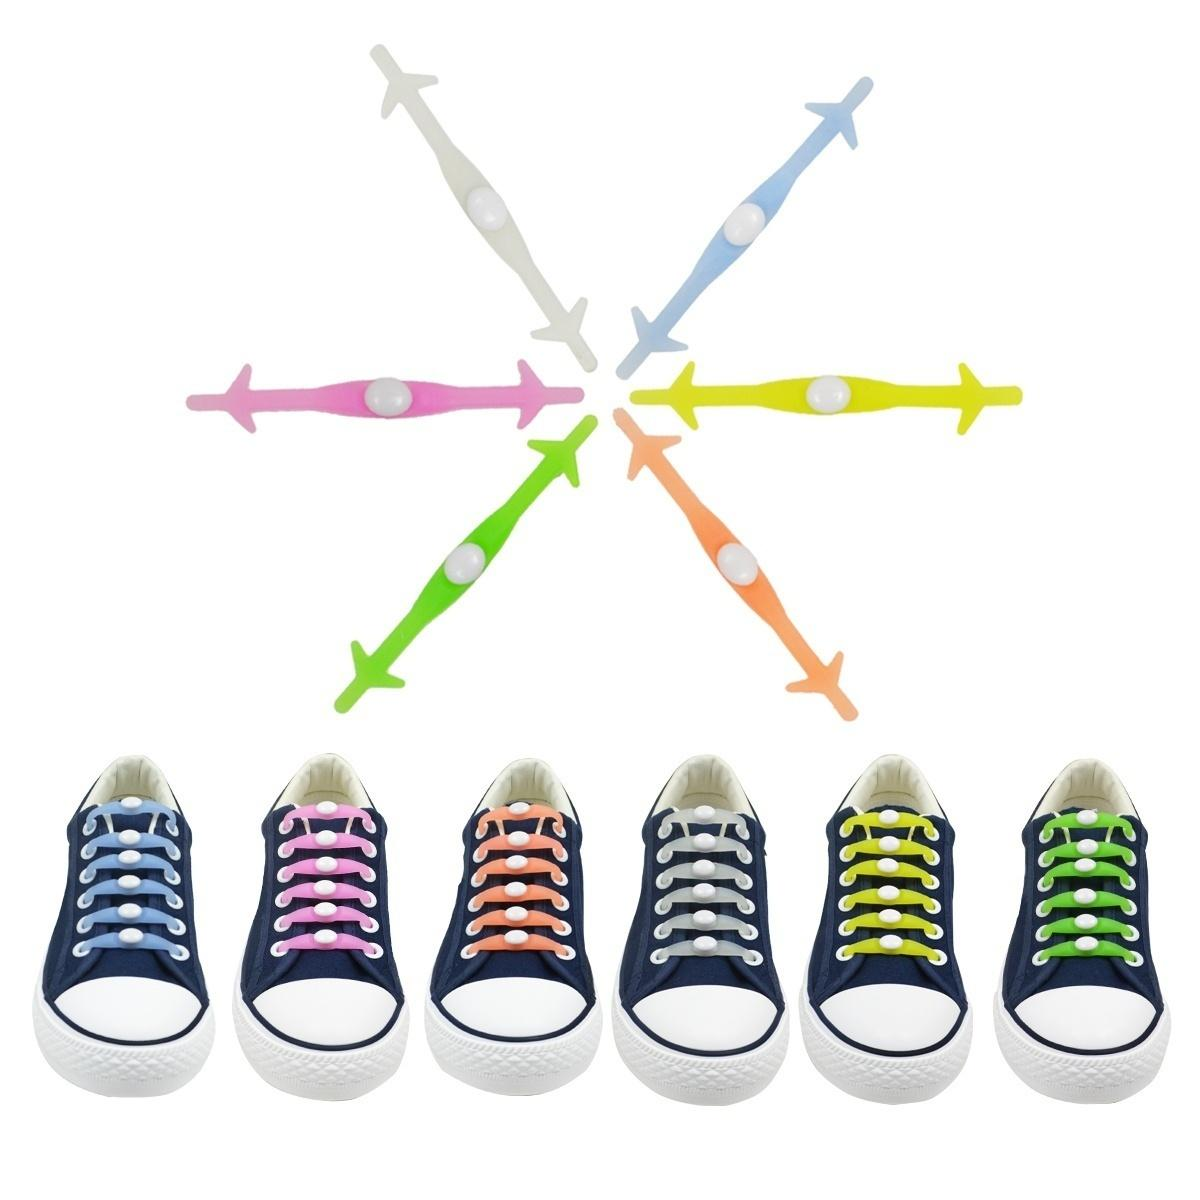 c7f15de794fe 2019 New Silicone Luminous Shoelace Glow In The Dark Colorful Fluorescent  Sport Shoelaces Adult Kids Children Party Birthday Gift From Keyigou2